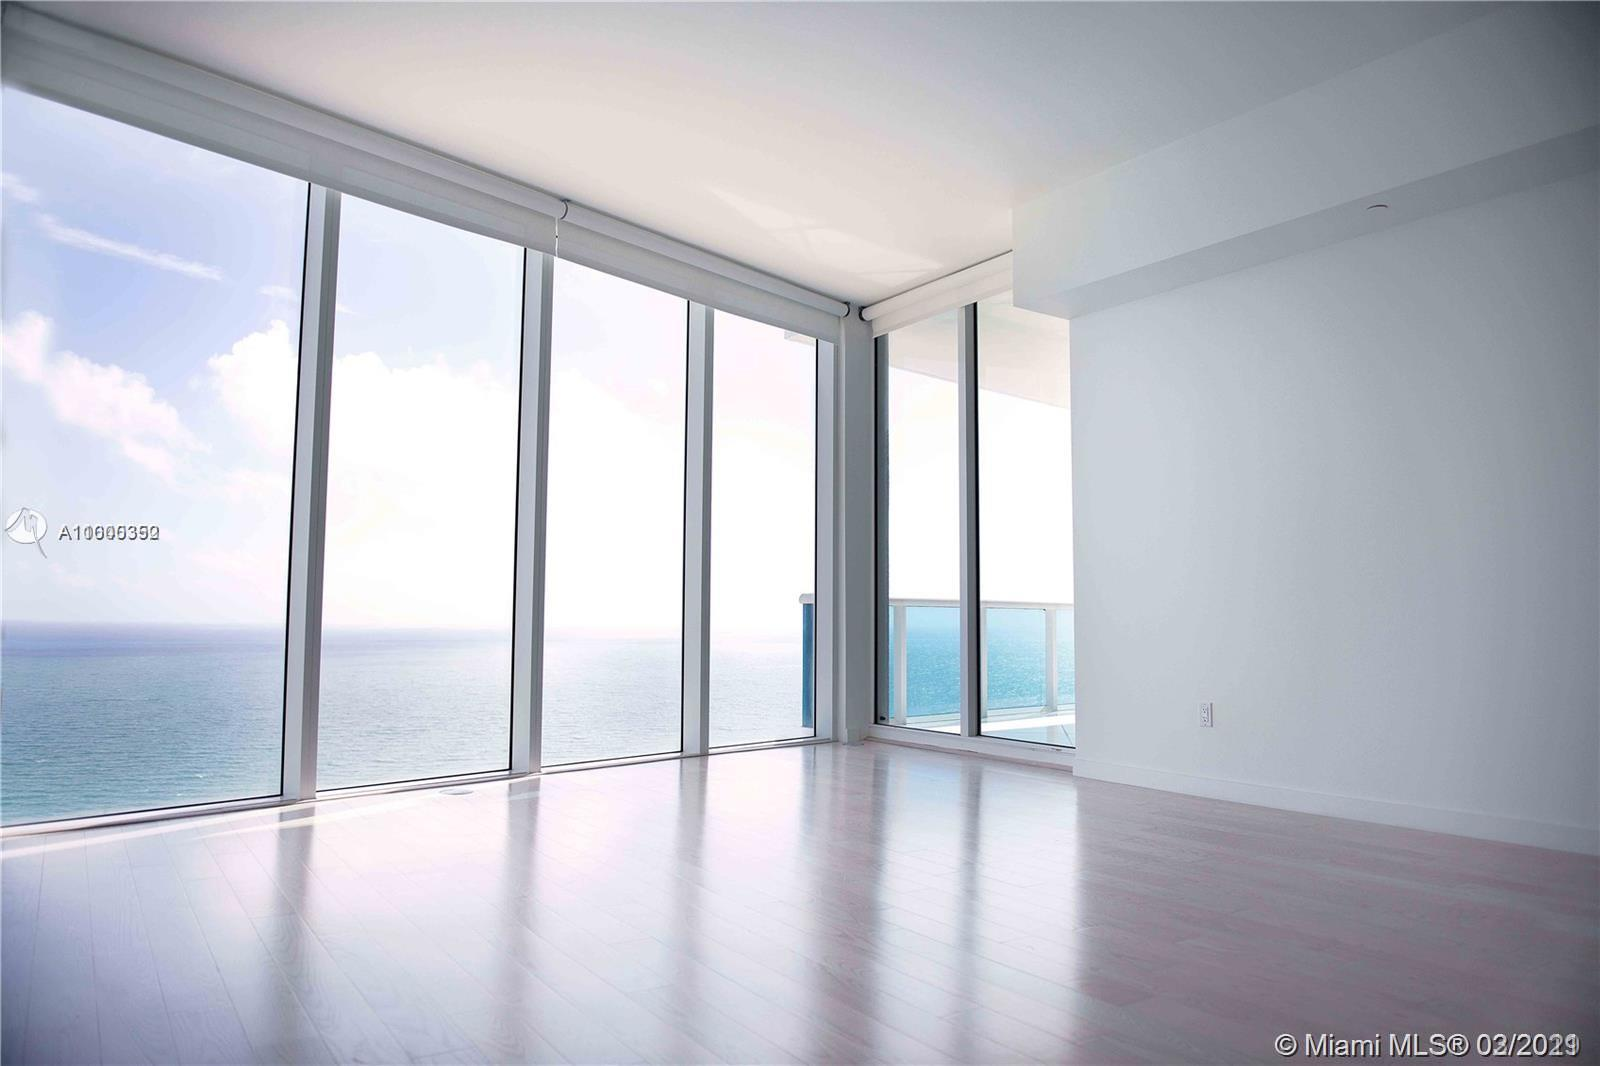 Beautiful completely renovated 3 Bedrooms condo at Trump Hollywood. The apartment has incredible direct ocean views, intracoastal and city views, 445 sq ft terrace, marble floors in the living/kitchen area and wood floors in the bedrooms.  Everything is brand new! The building offers luxury services and amenities such as 24h concierge, valet service, gym, spa, beach service, billiards room, social room,  and more. The apt can be sold with a cabana (not included in listing price). Apartment has 4 storage spaces in the building.